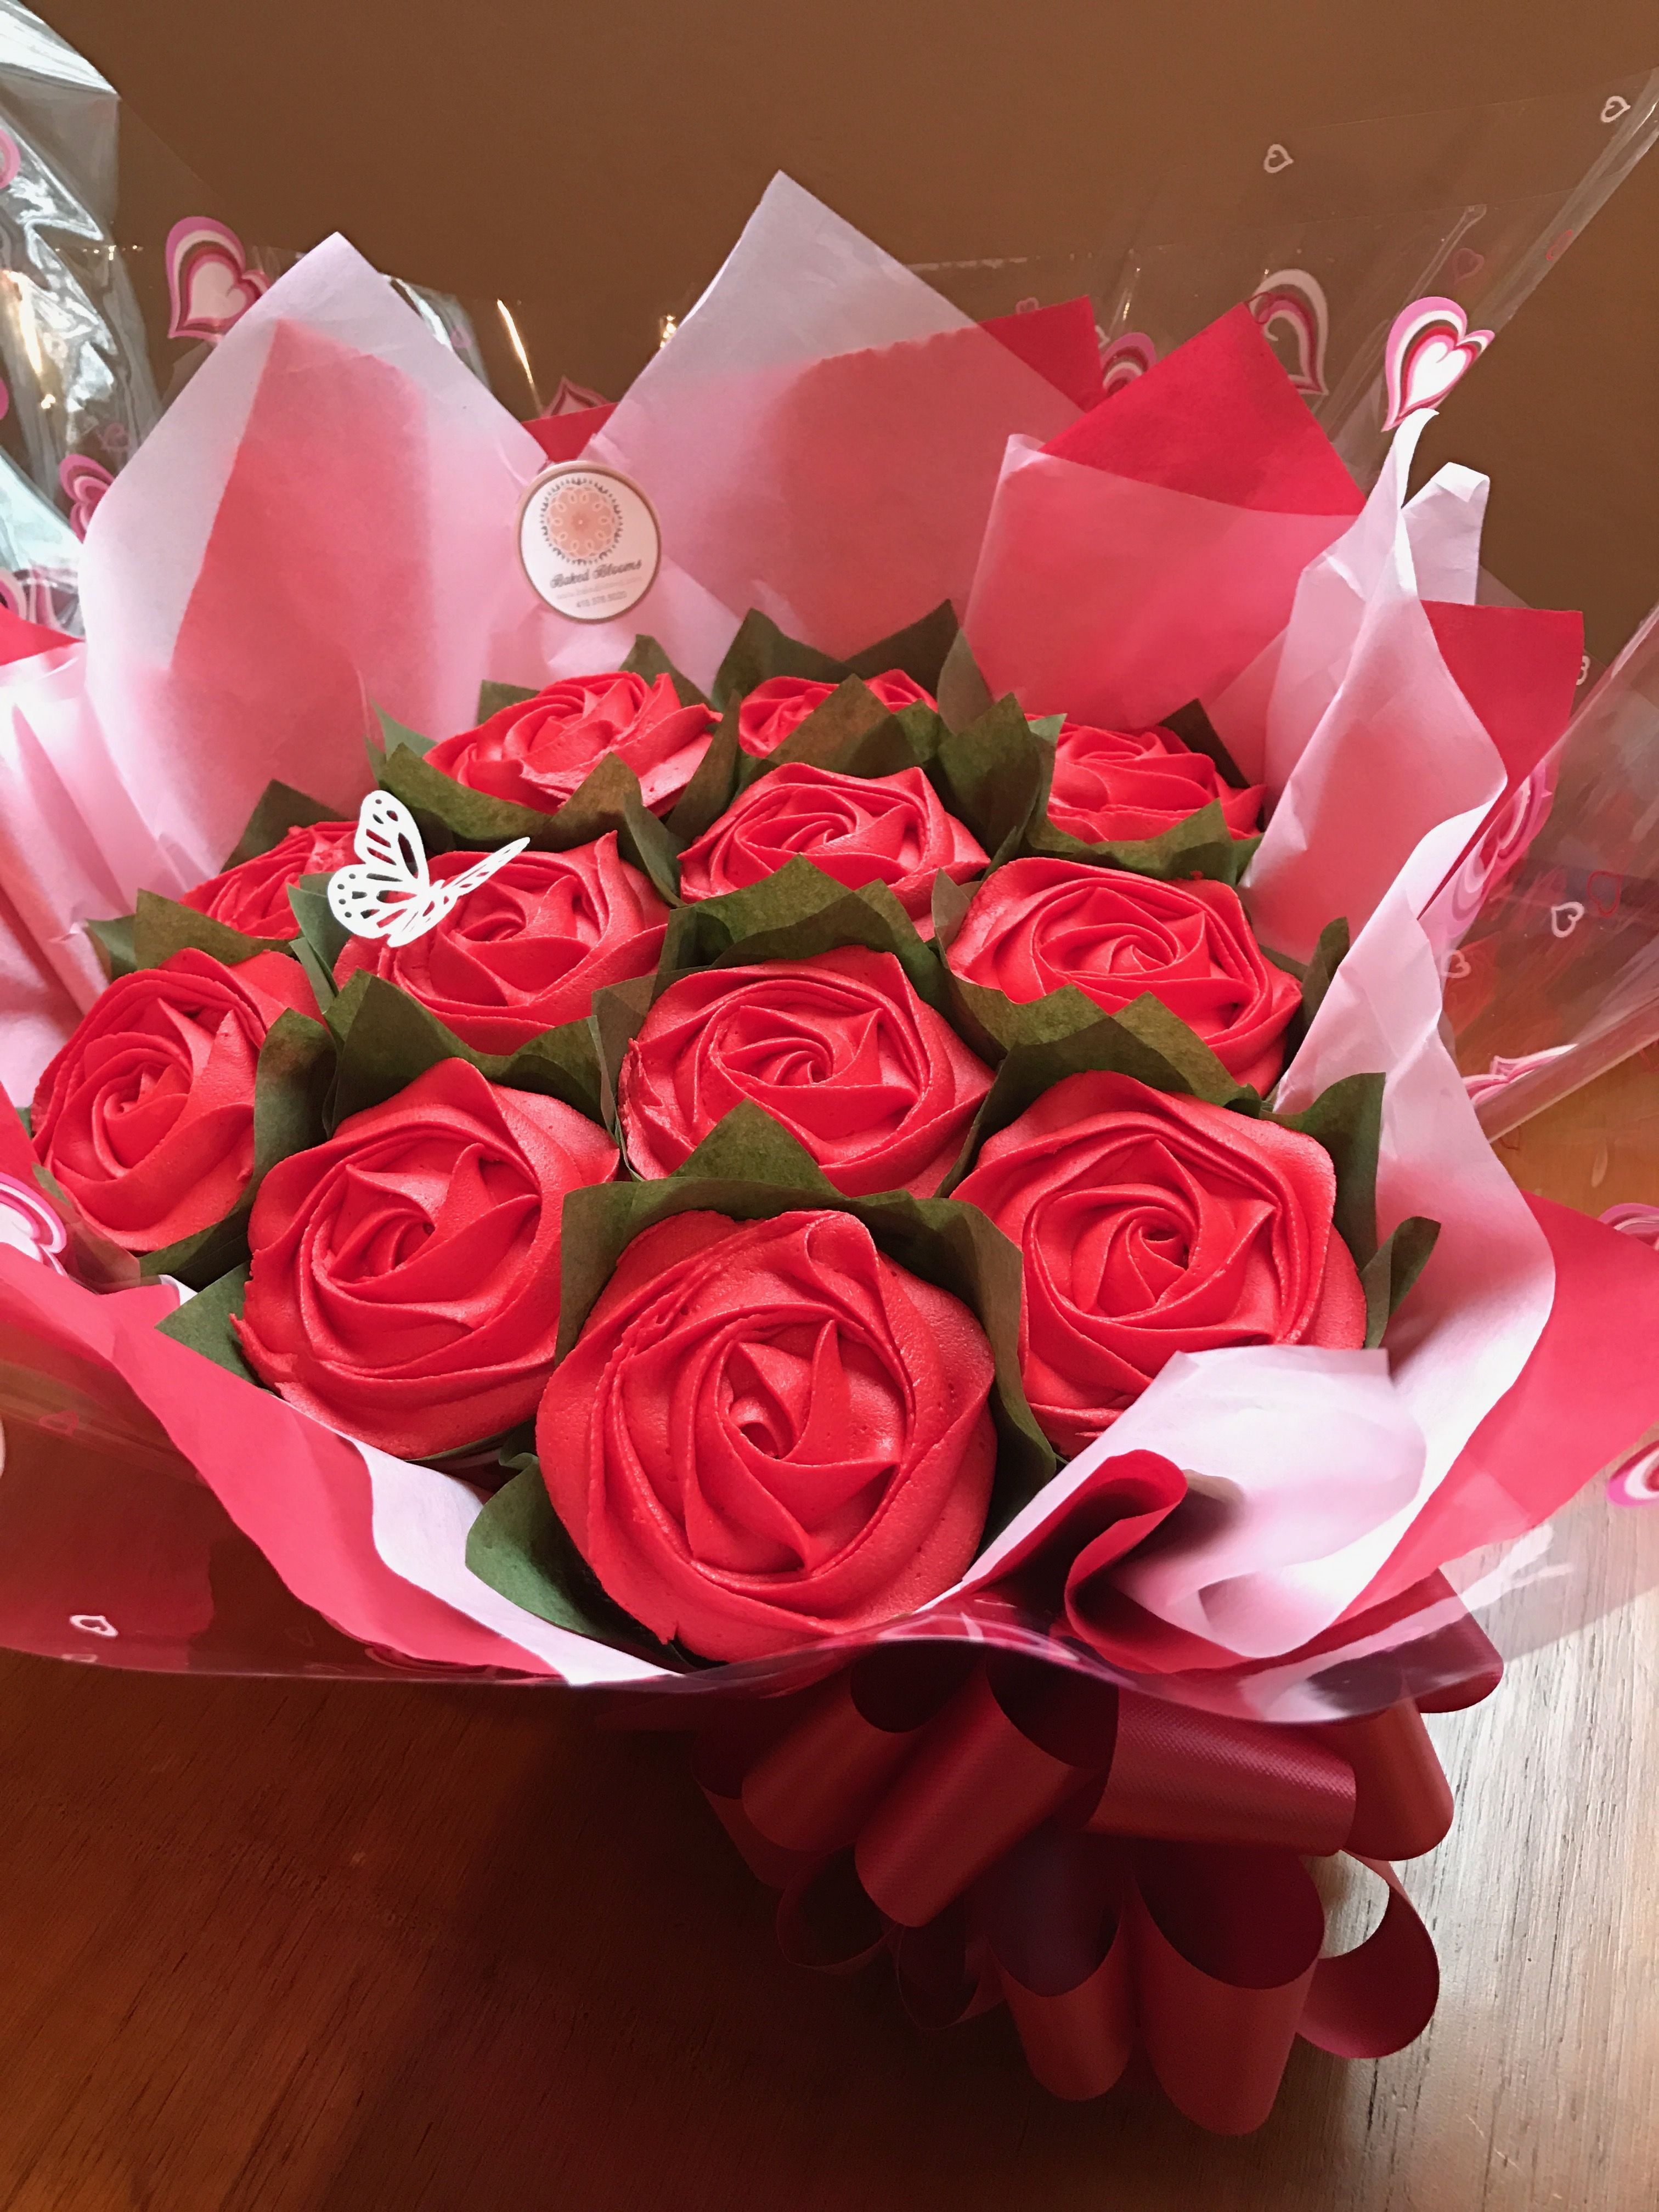 Dozen red roses cupcake bouquet for Valentine's Day www.bakedblooms.com